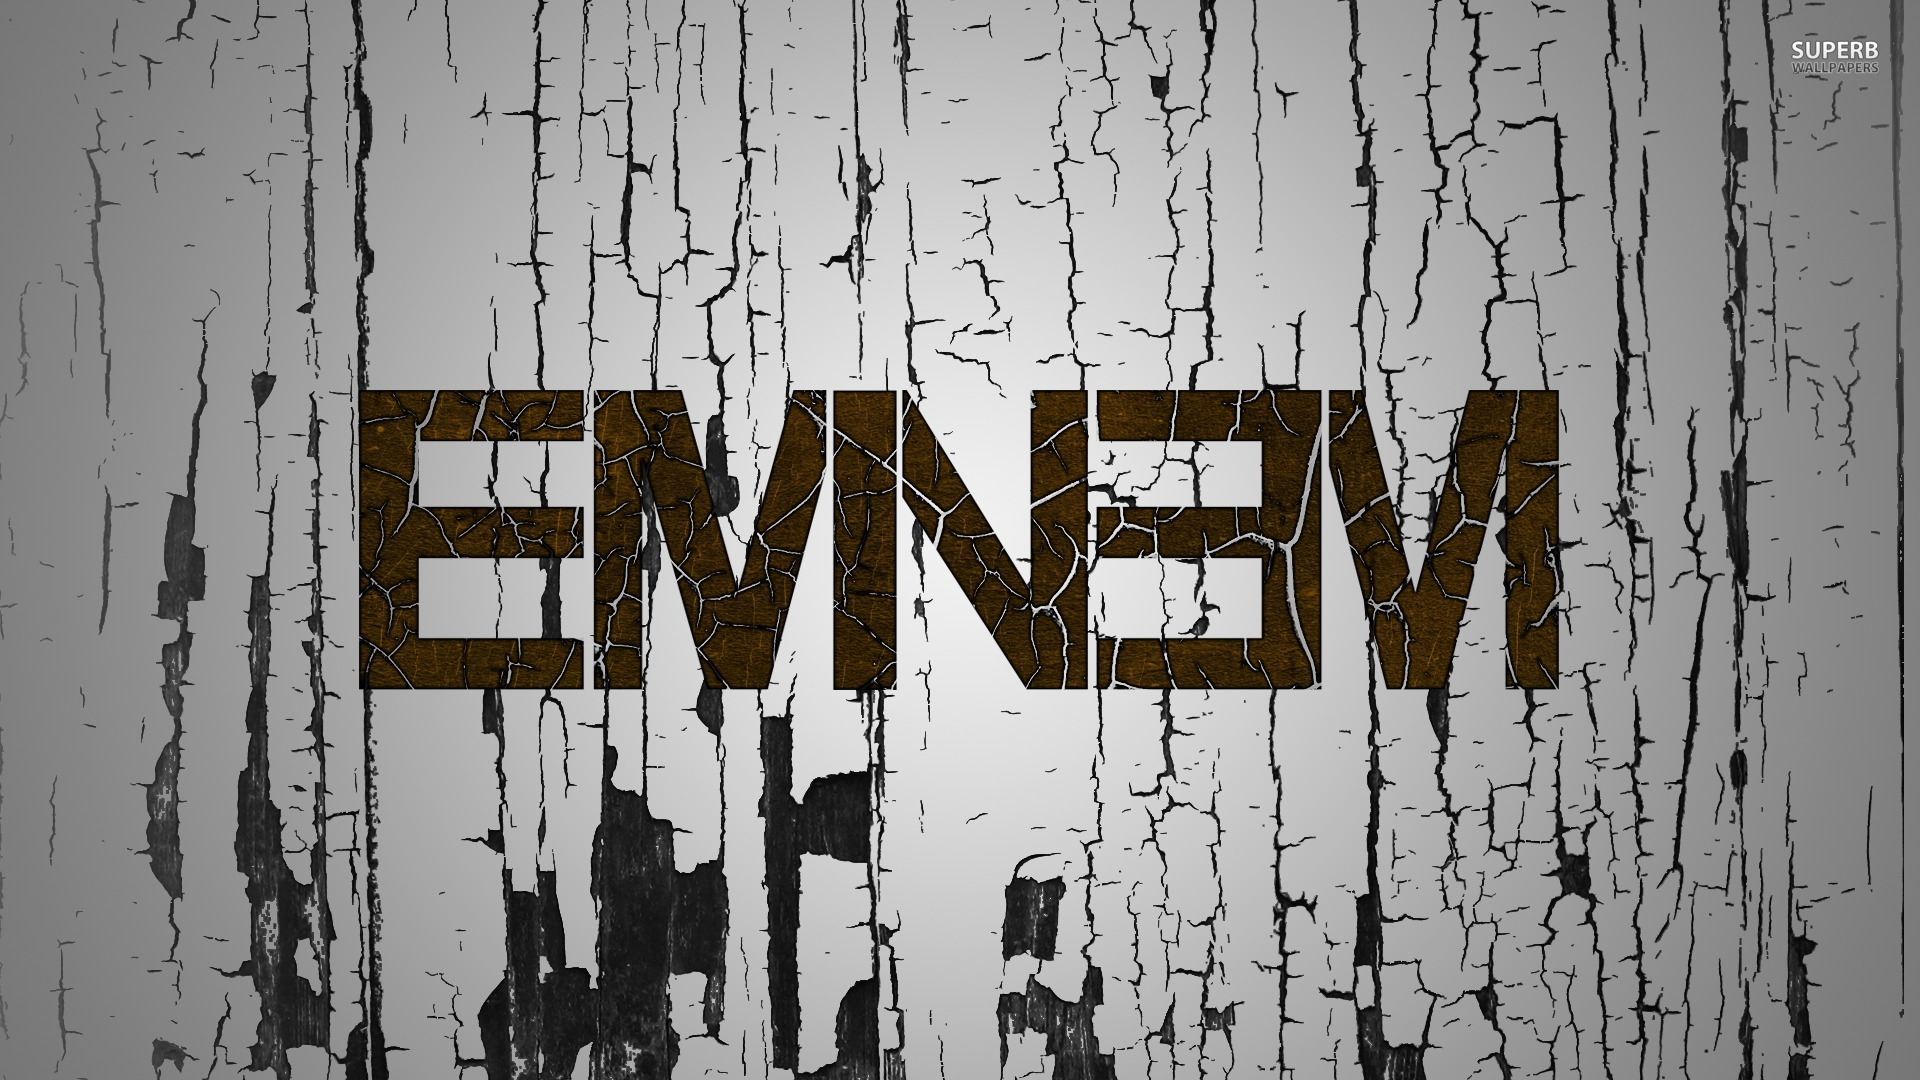 eminem cool wallpapers - photo #39